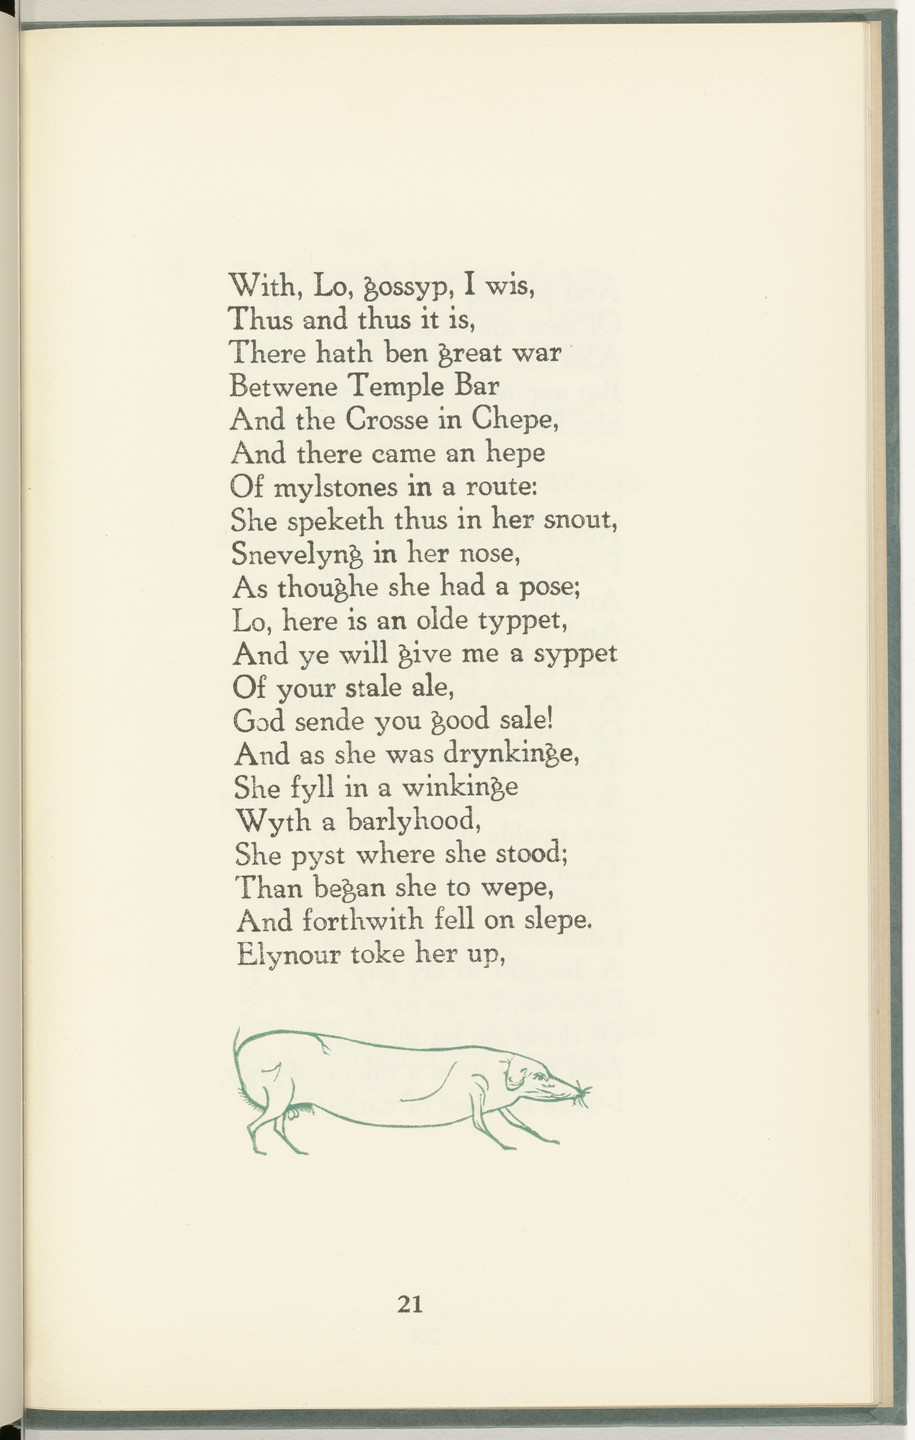 Leonard Baskin. Castle Street Dog (in-text plate, page 21) from The Tunning of Elynour Rummynge. 1952, published 1953